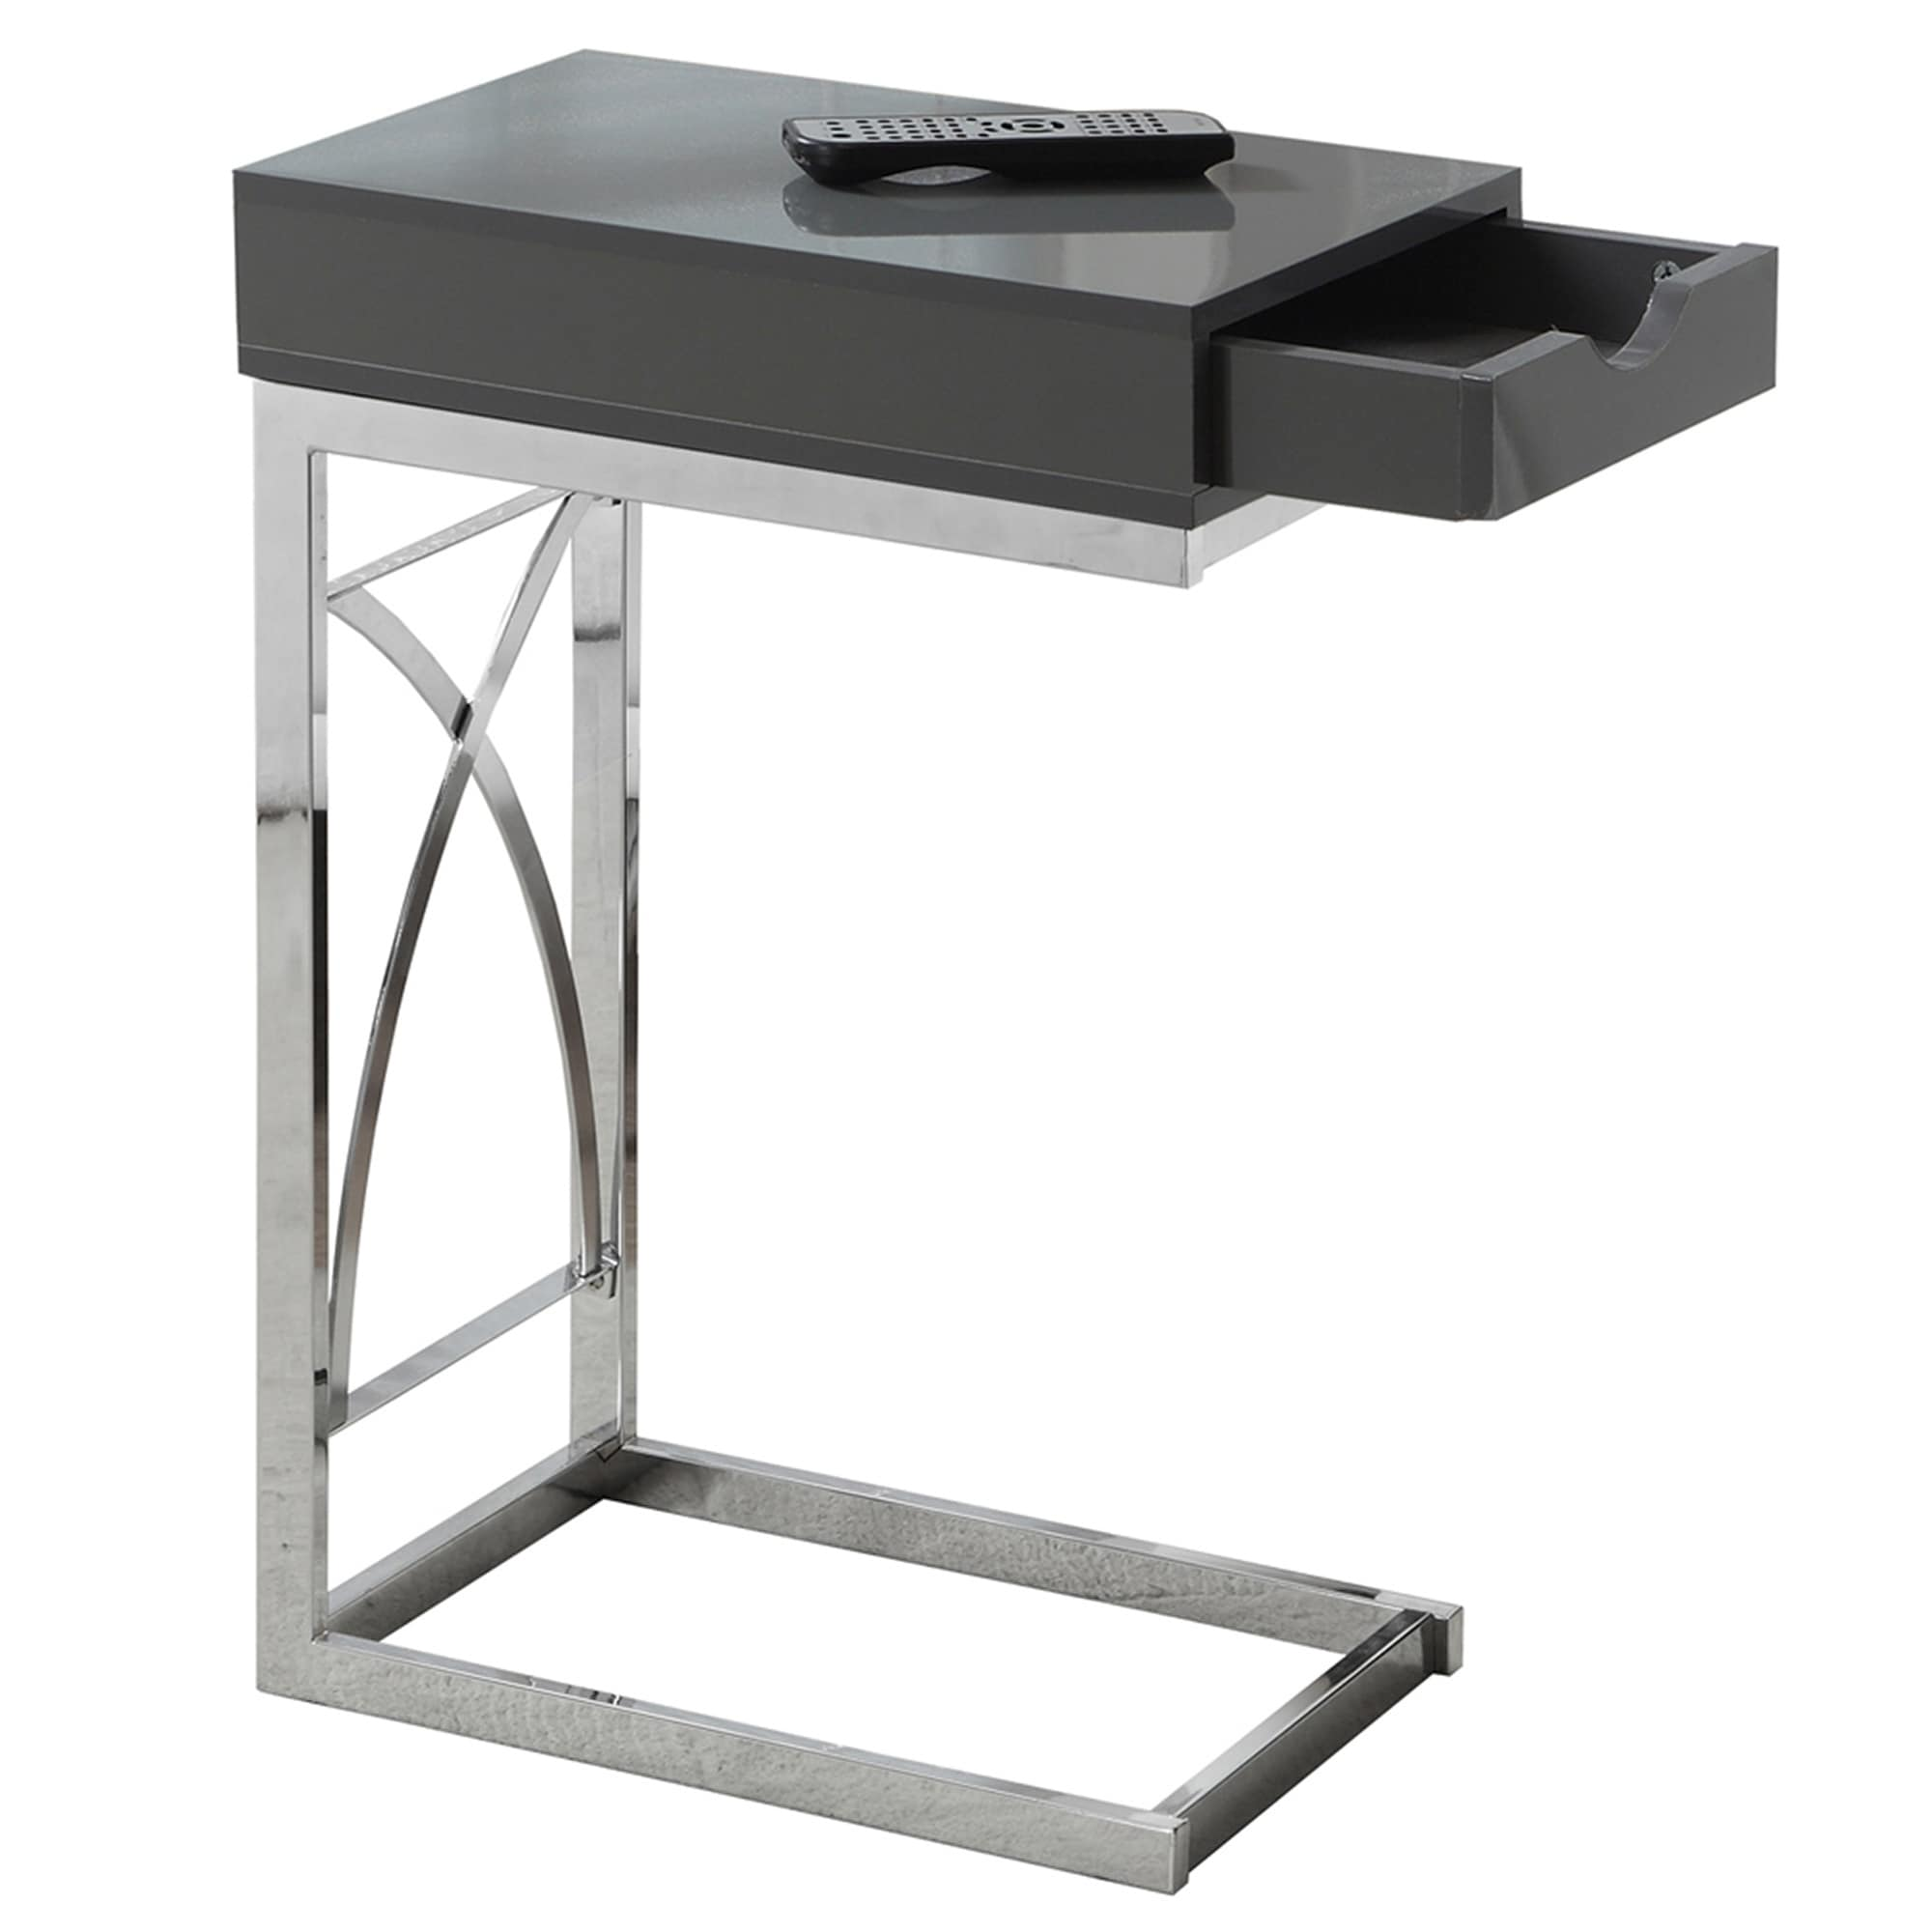 Chrome Metal Glossy Grey with Drawer Accent Table (Glossy Grey)